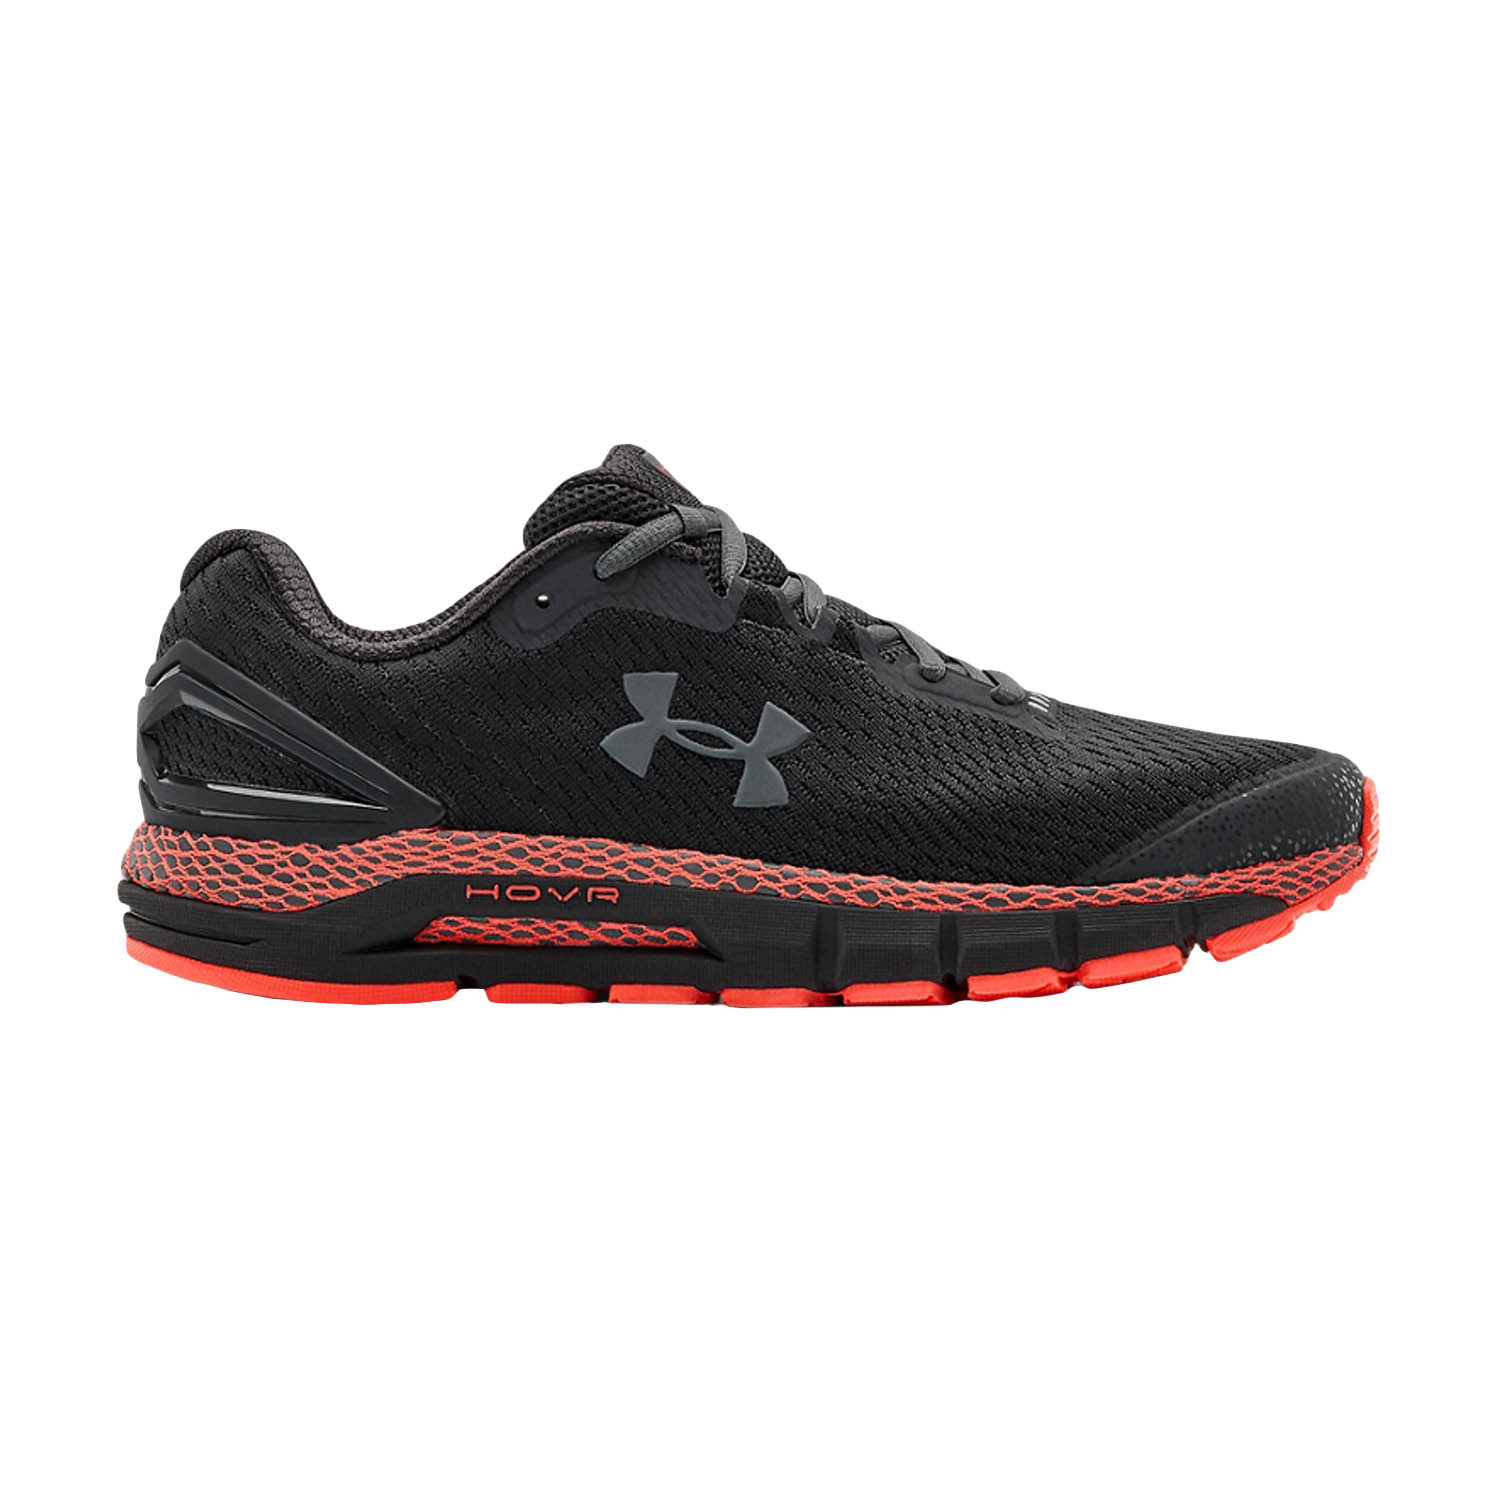 Under Armour Hovr Guardian 2 - Blackout Purple/Beta Pitch/Gray